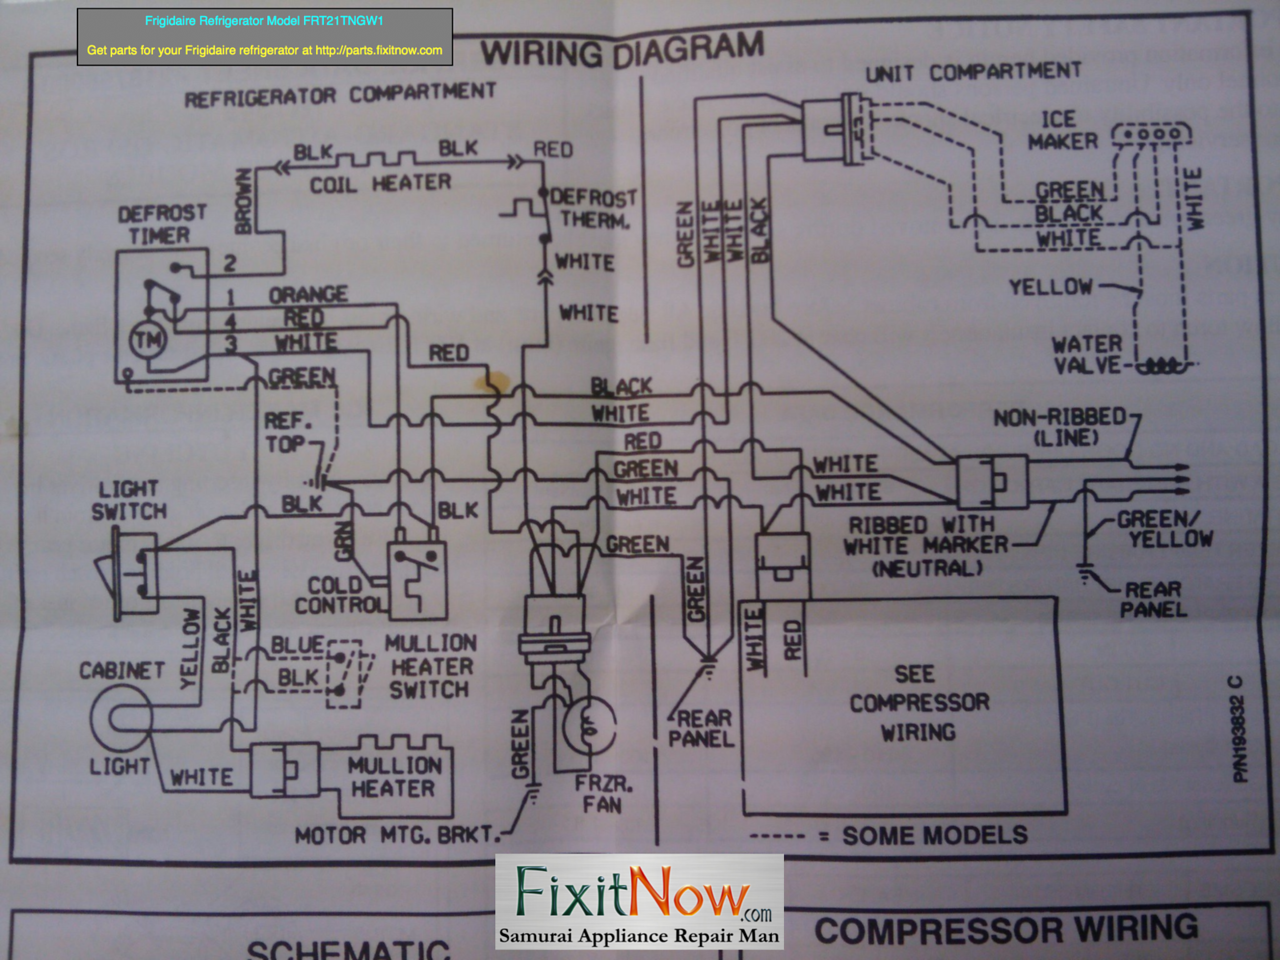 Hotpoint Dryer Timer Wiring Diagram KitchenAid Refrigerator Wiring – White Knight Tumble Dryer Wiring Diagram